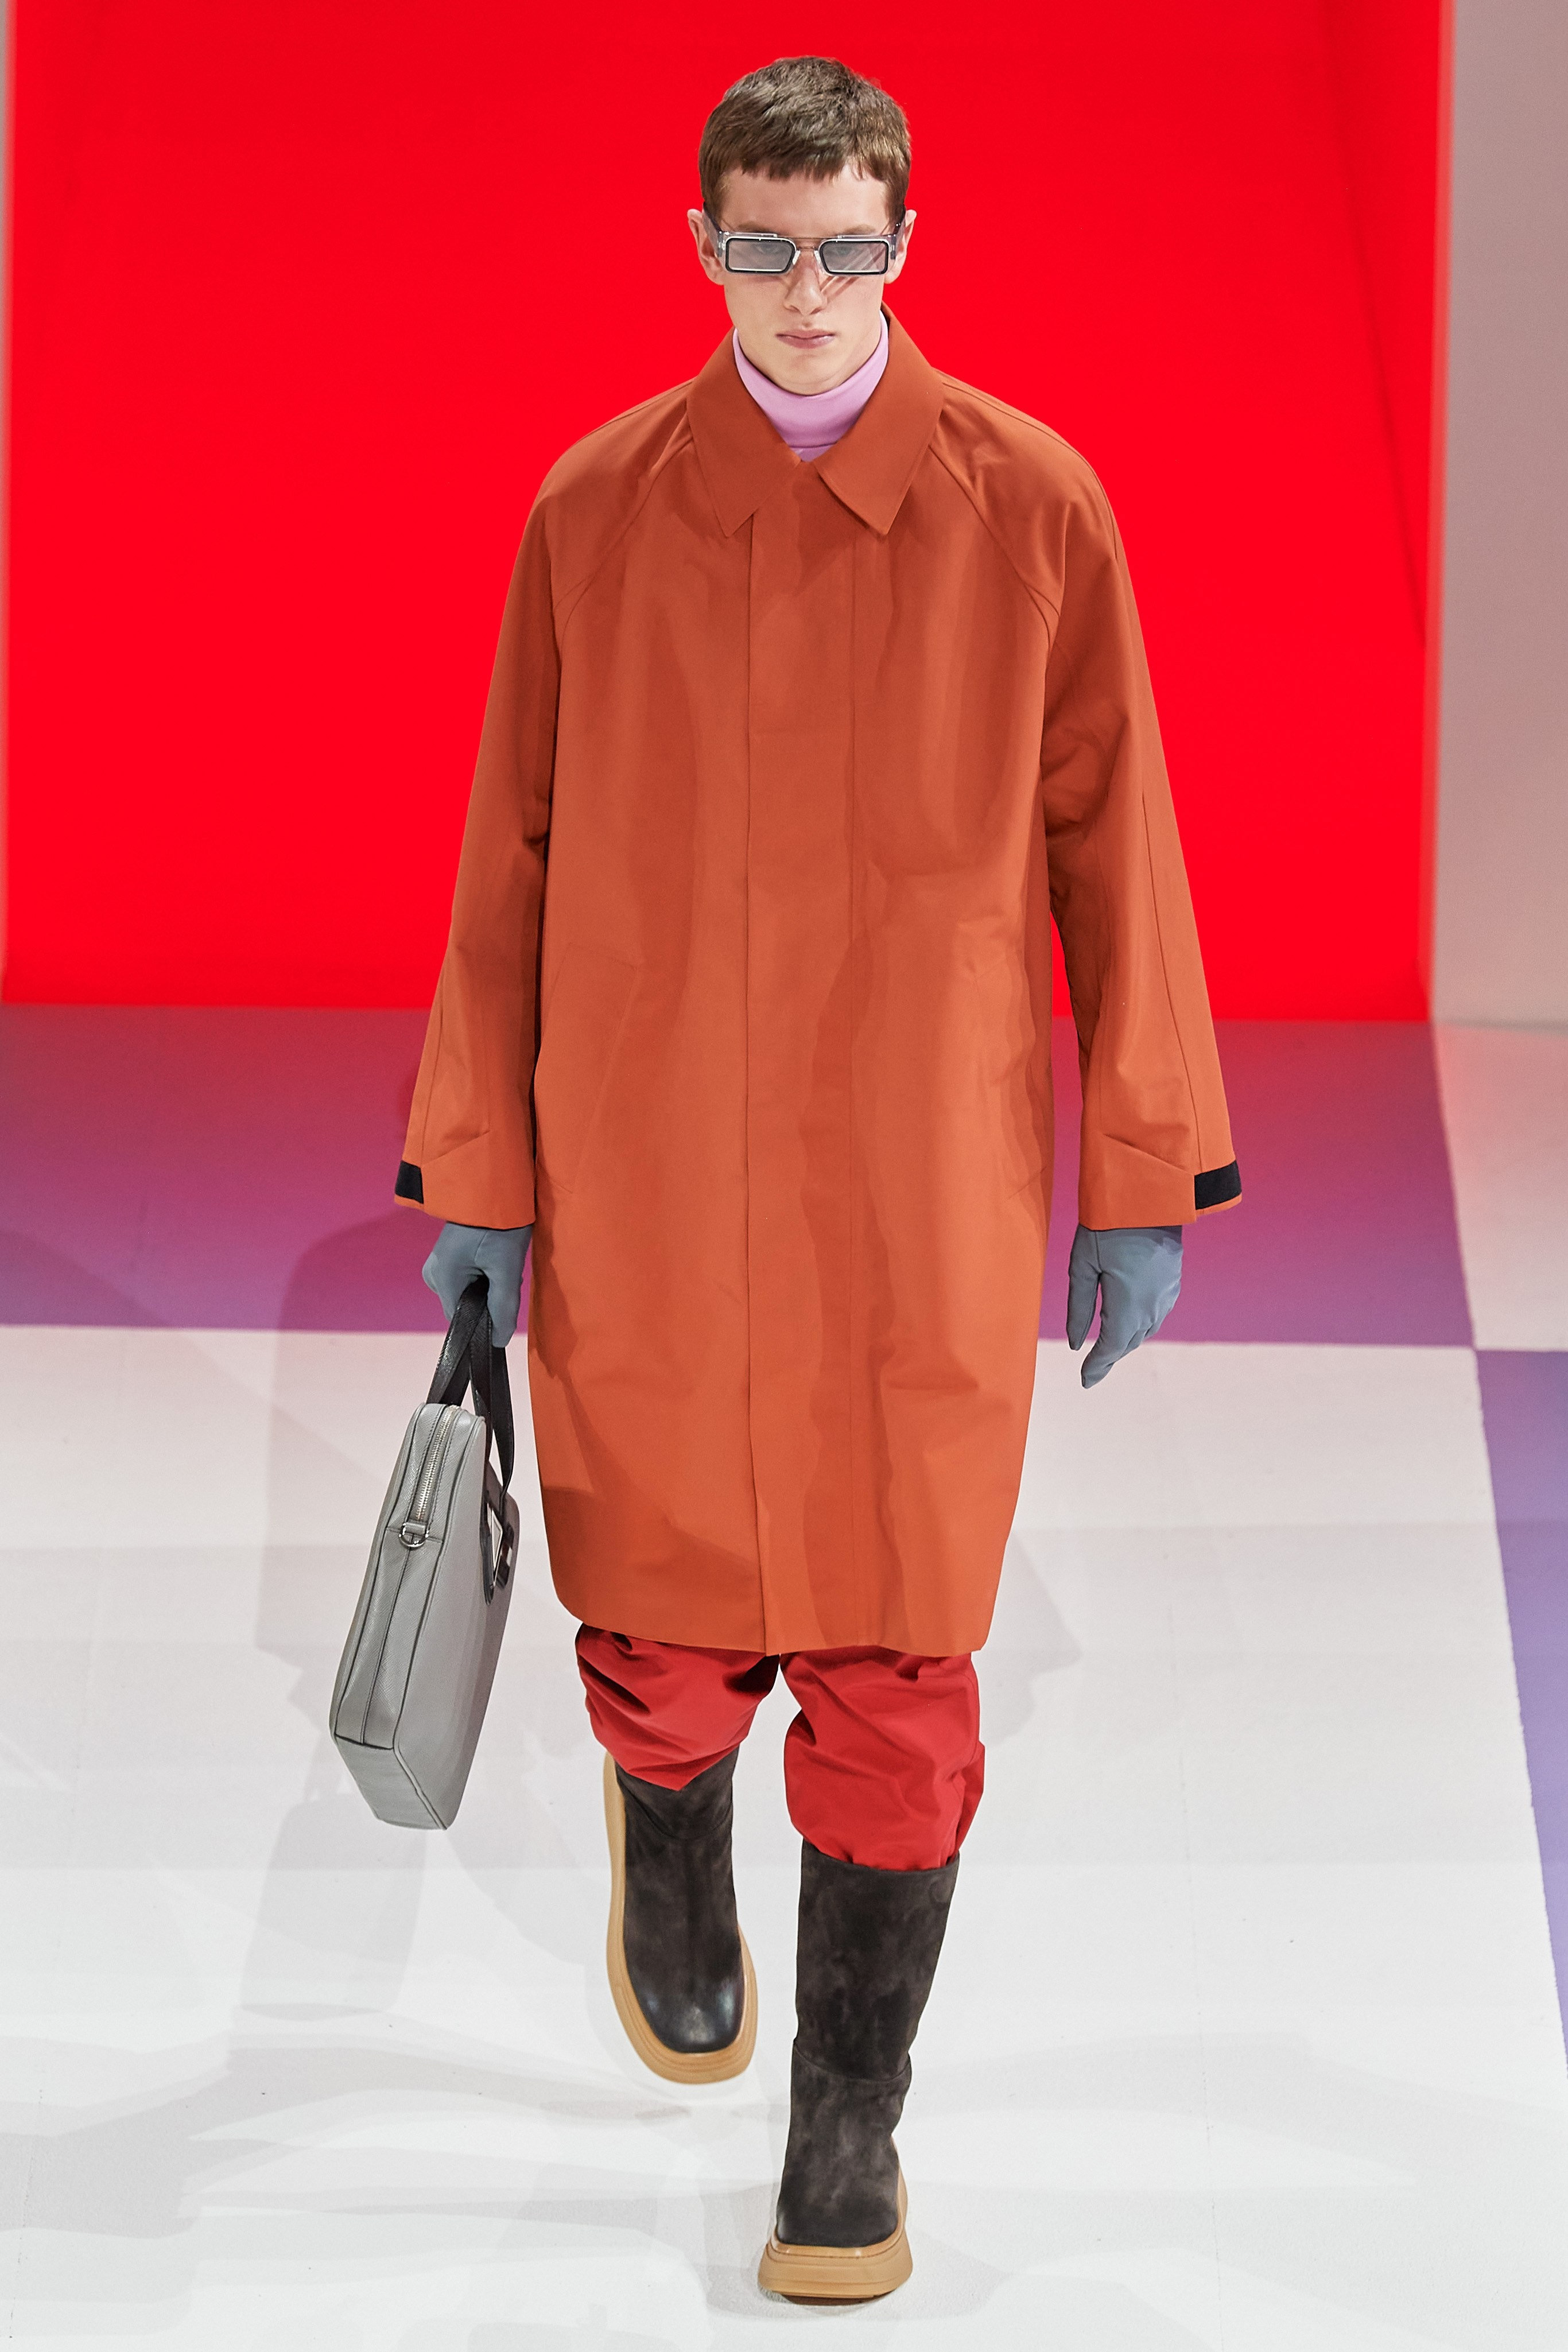 A Look at the Prada Fall 2020 Menswear Collection prada fall 2020 A Look at the Prada Fall 2020 Menswear Collection FIO2083